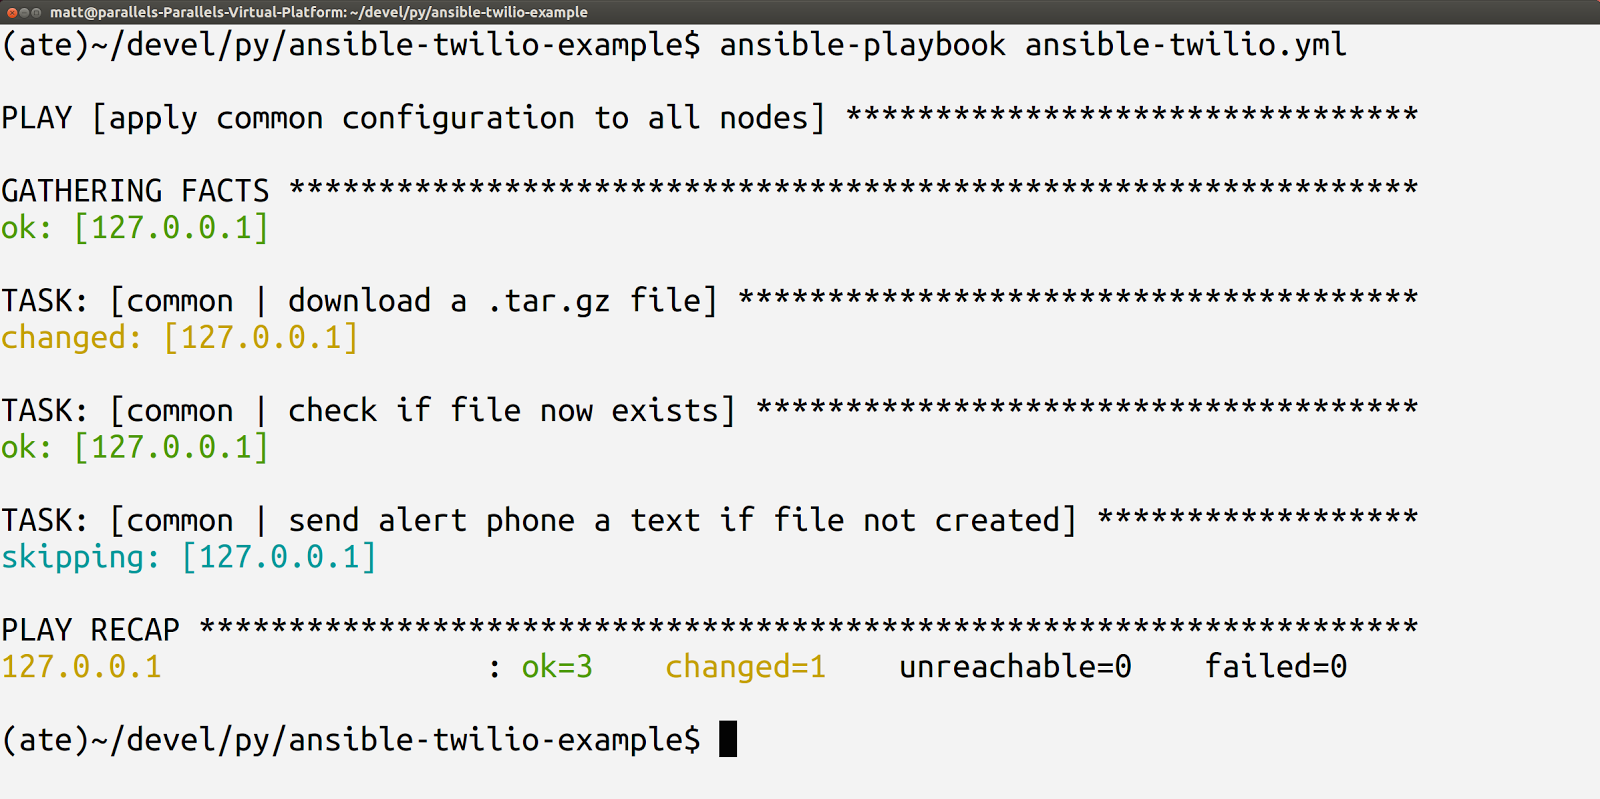 Ansible Text Message Notifications With Twilio Sms